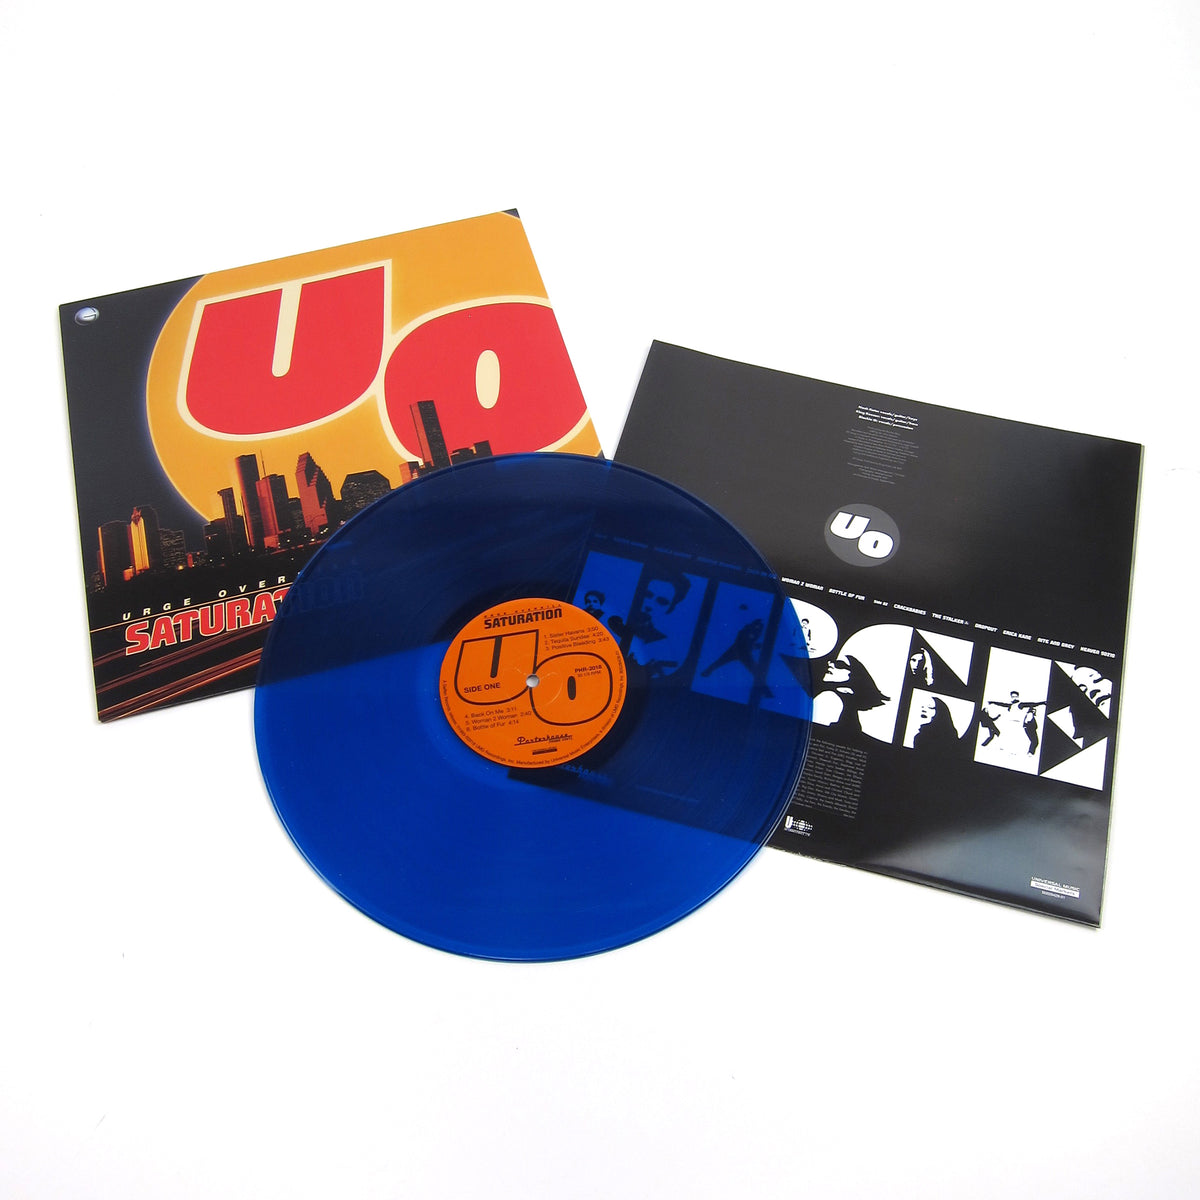 Urge Overkill: Saturation 25th Anniversary Edition (Colored Vinyl) Vinyl LP